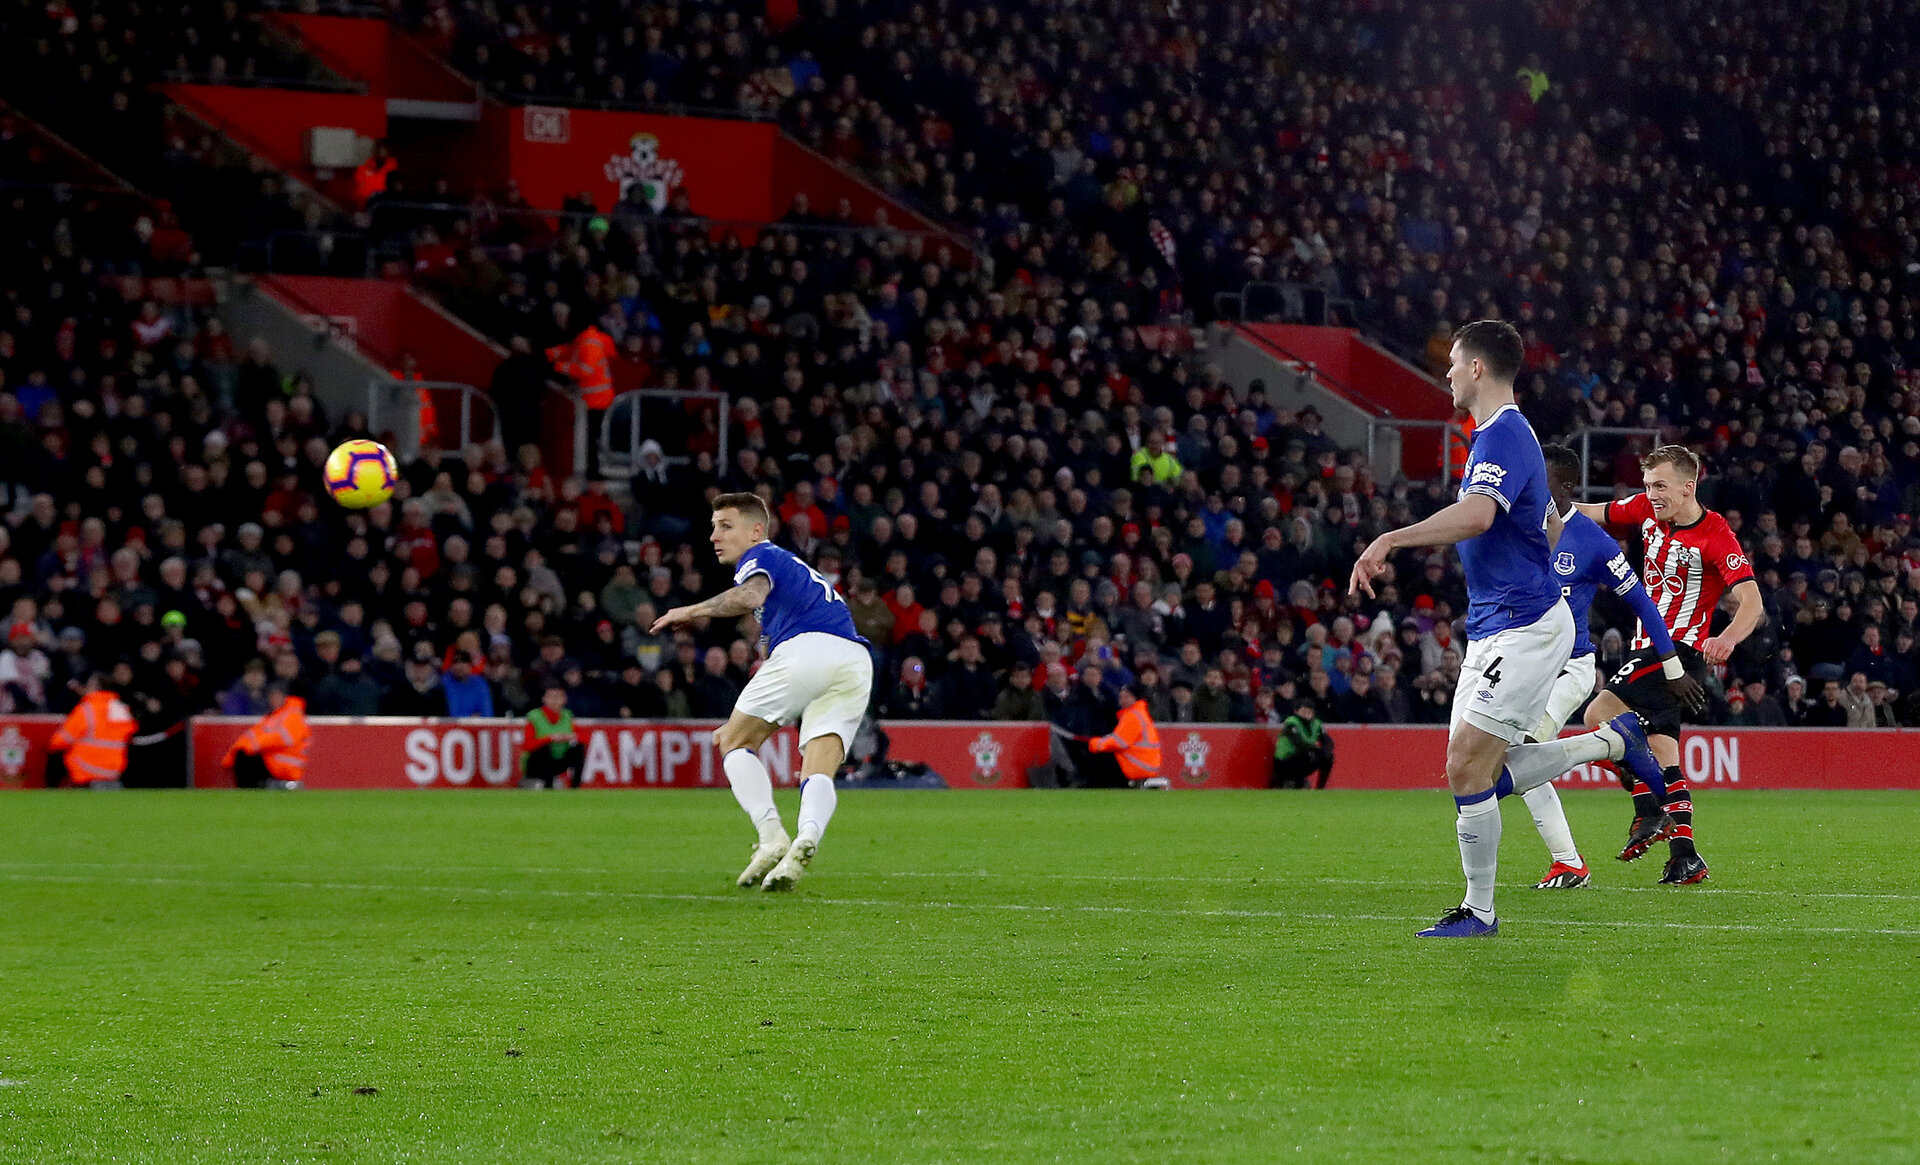 SOUTHAMPTON, ENGLAND - JANUARY 19: James Ward-Prowse(R) of Southampton see's his shot hit the back of the net to open the scoring during the Premier League match between Southampton FC and Everton FC at St Mary's Stadium on January 19, 2019 in Southampton, United Kingdom. (Photo by Matt Watson/Southampton FC via Getty Images)